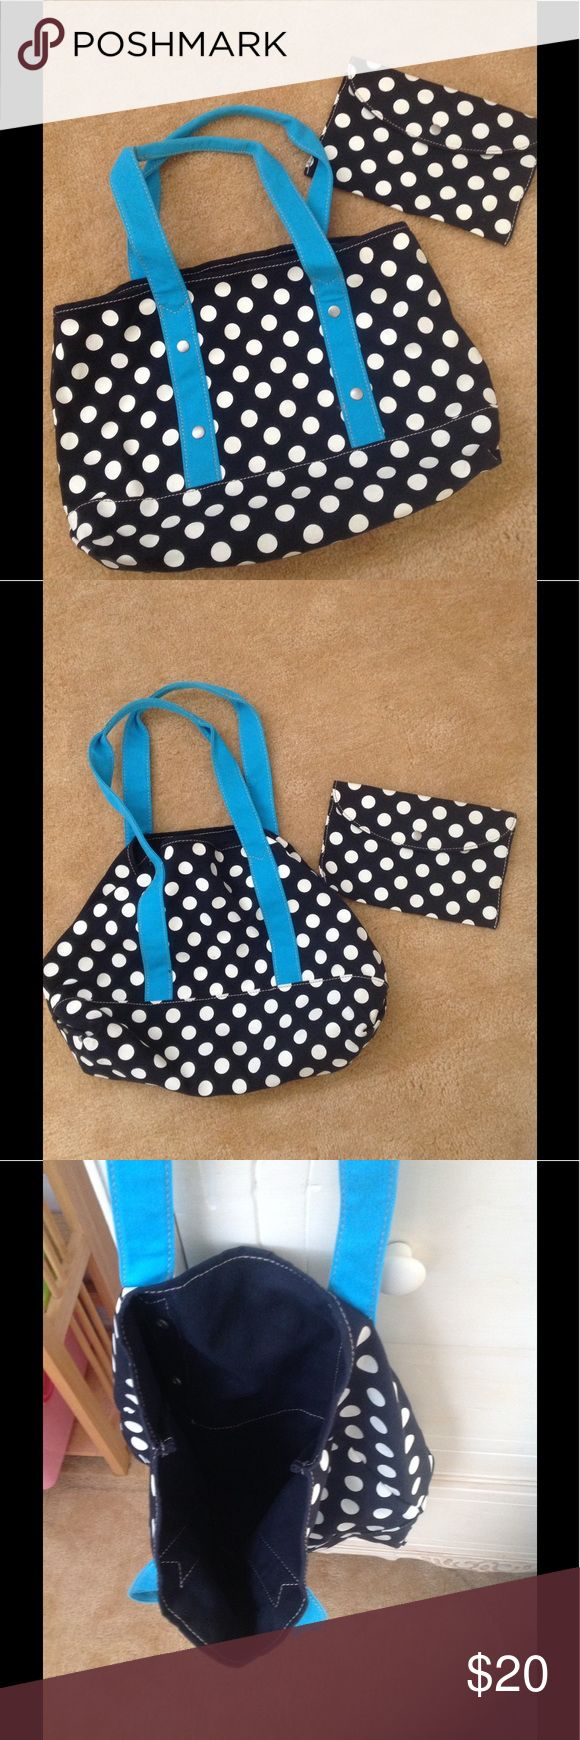 """J Crew tote and makeup bag excellent condition like new cloth tote. make up bag included. measures approx 15"""" x 11"""" x 4"""" base. can be used both ways as shown in photos. J. Crew Bags Totes"""